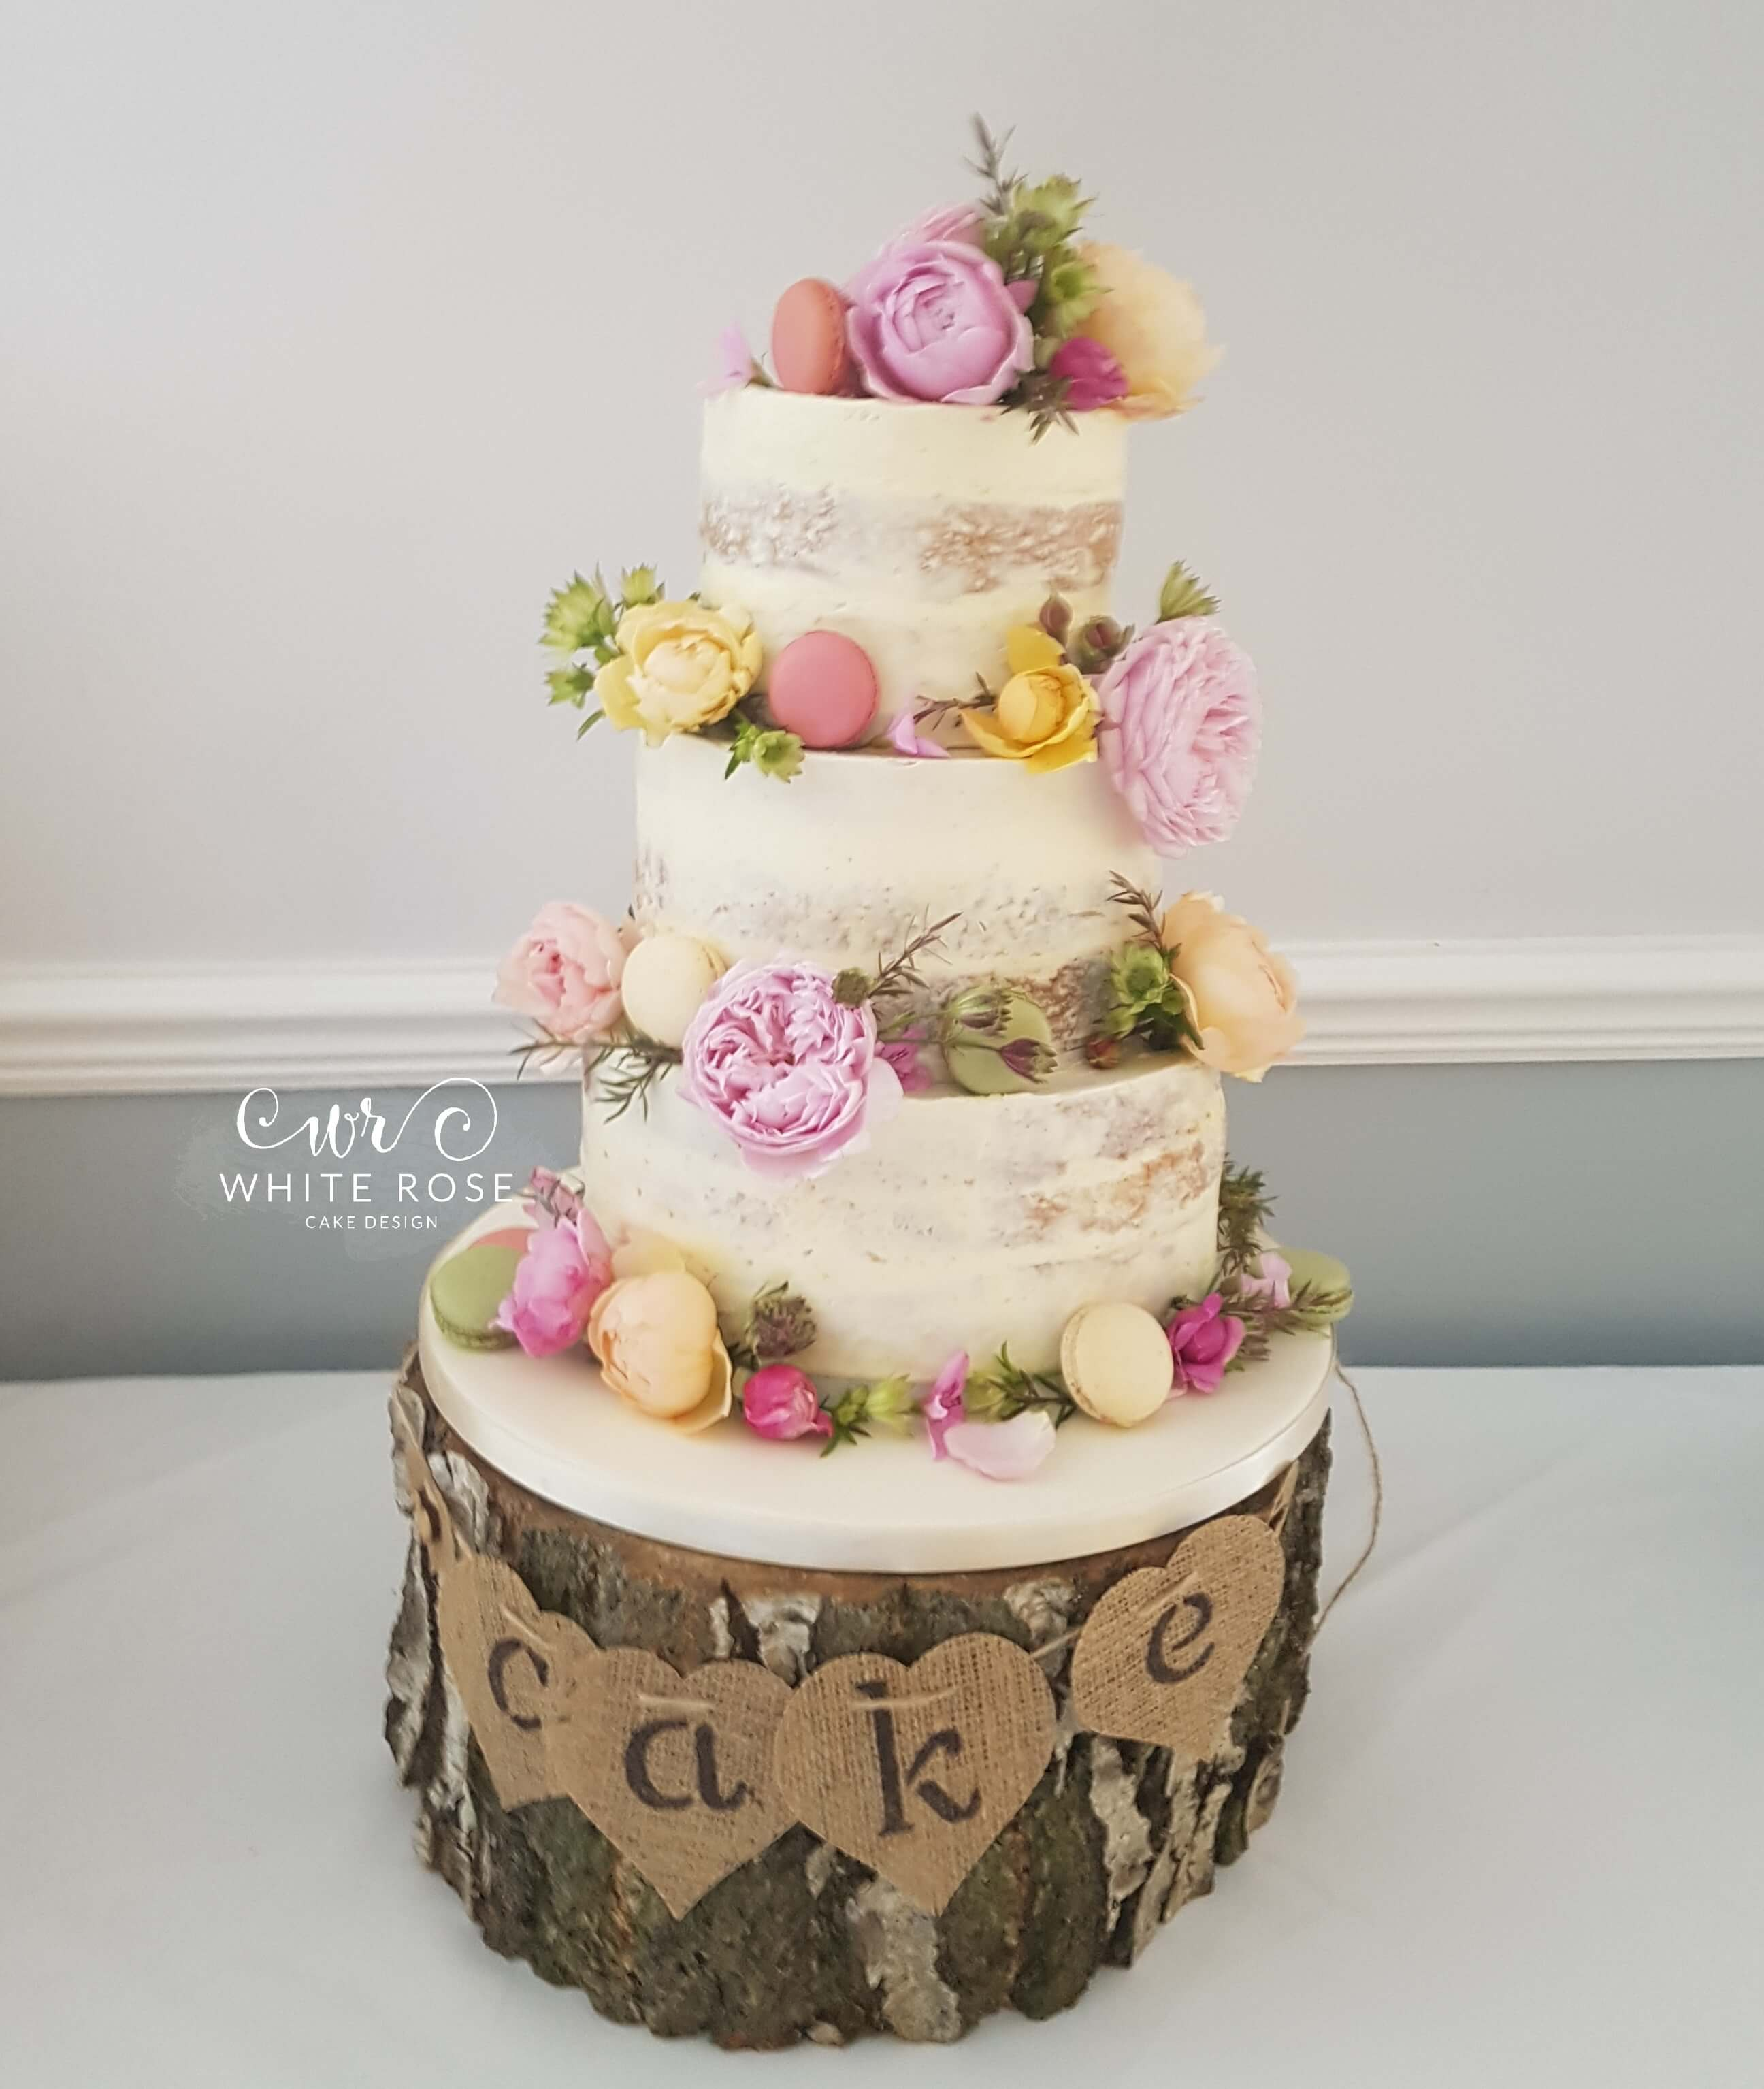 white rose cake design naked and semi naked wedding cakes west yorkshire. Black Bedroom Furniture Sets. Home Design Ideas